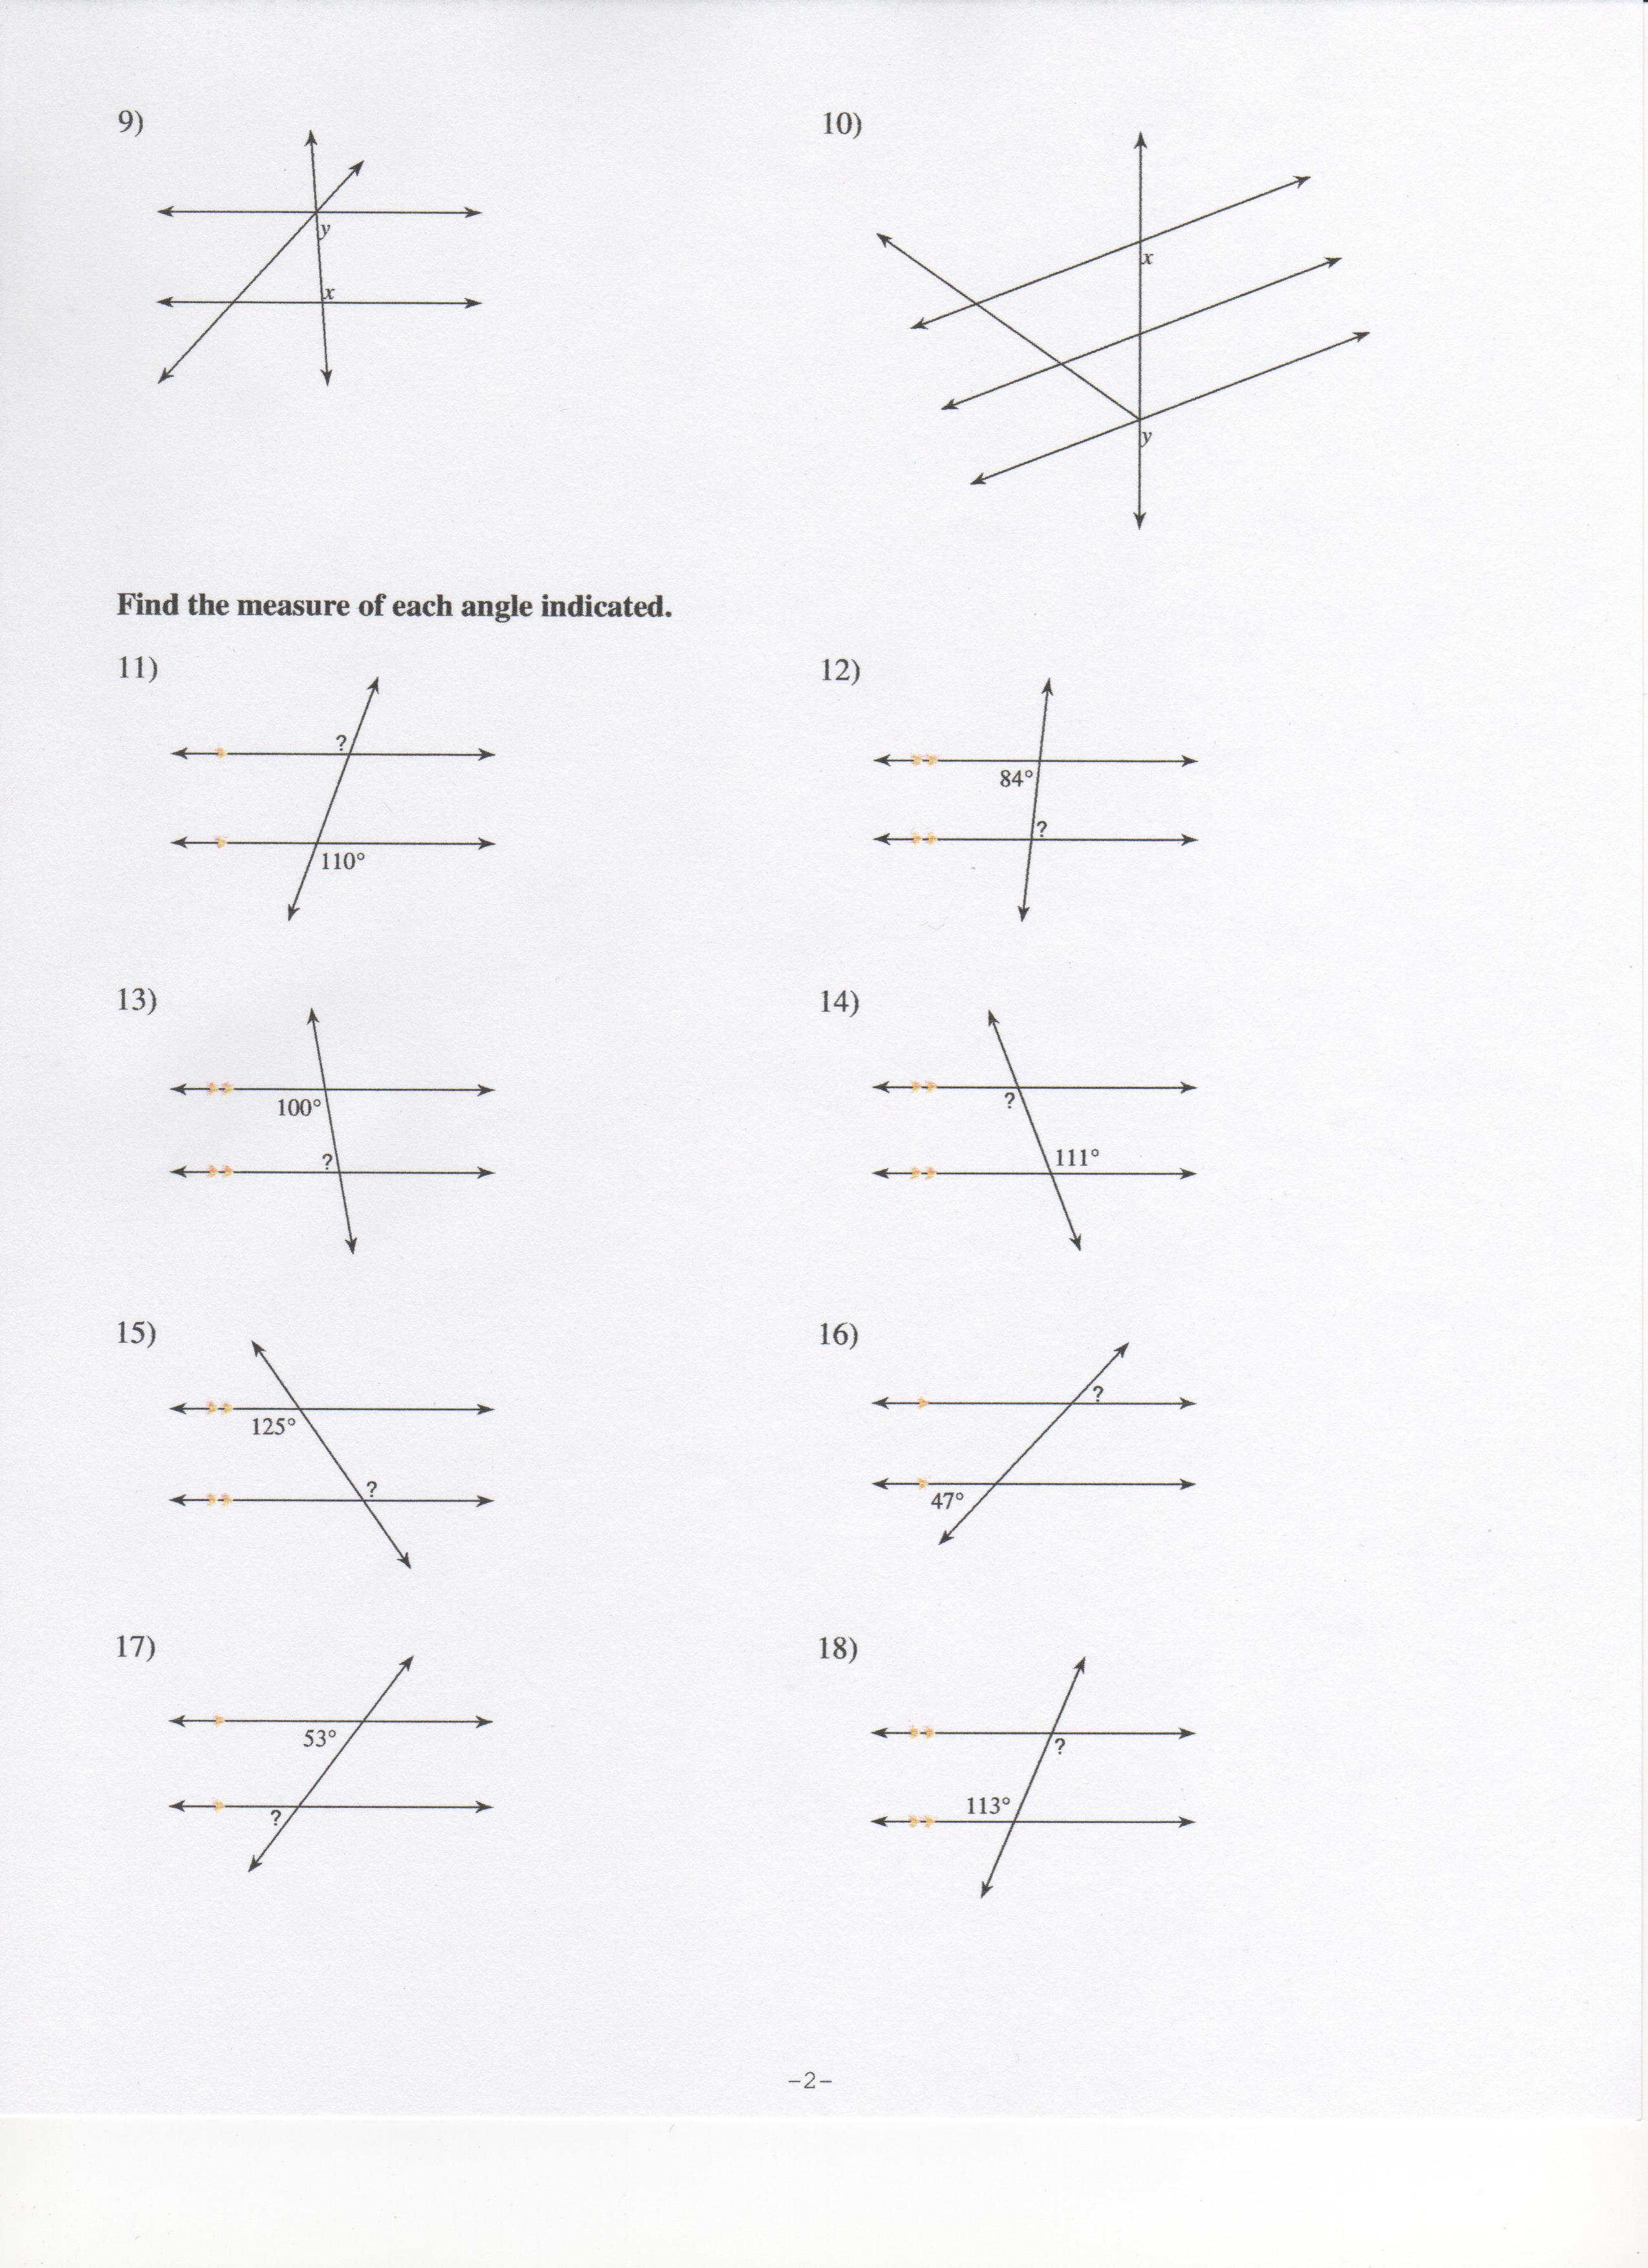 Hw Due 12 11 Plus Answers To Angles Wksht